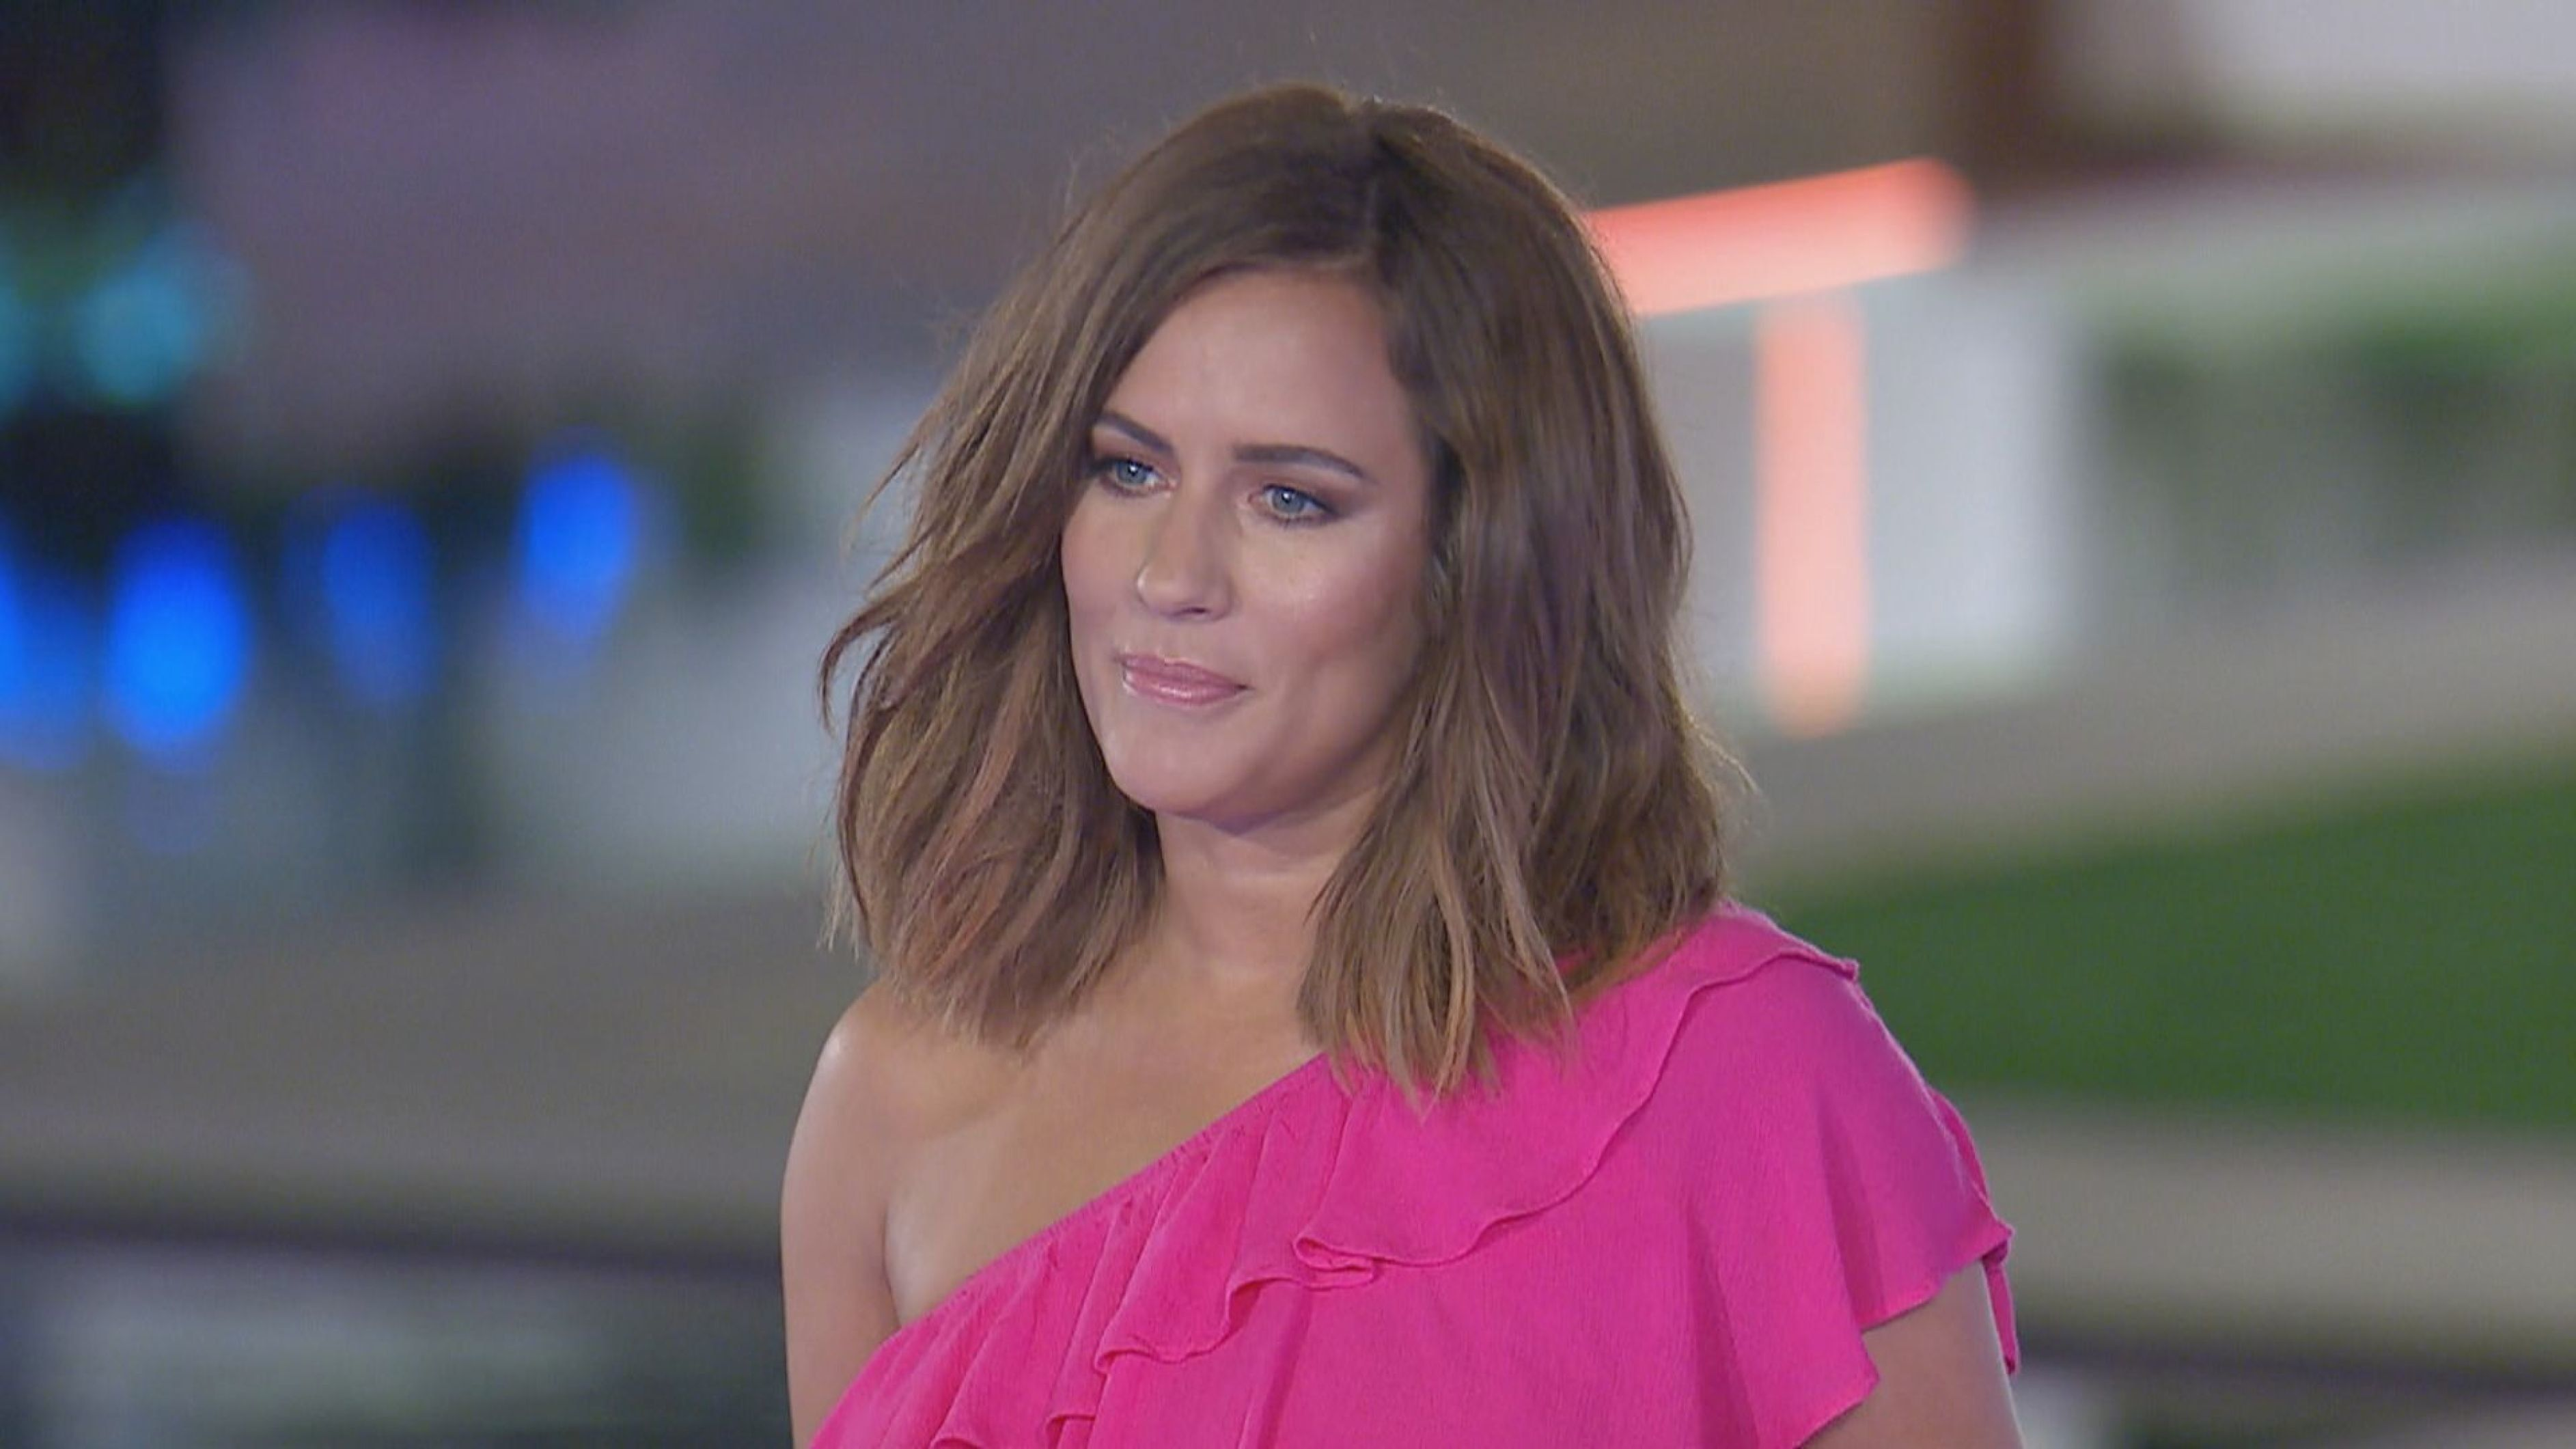 'Love Island' Host Caroline Flack Claims Show 'Portrays Unrealistic Body